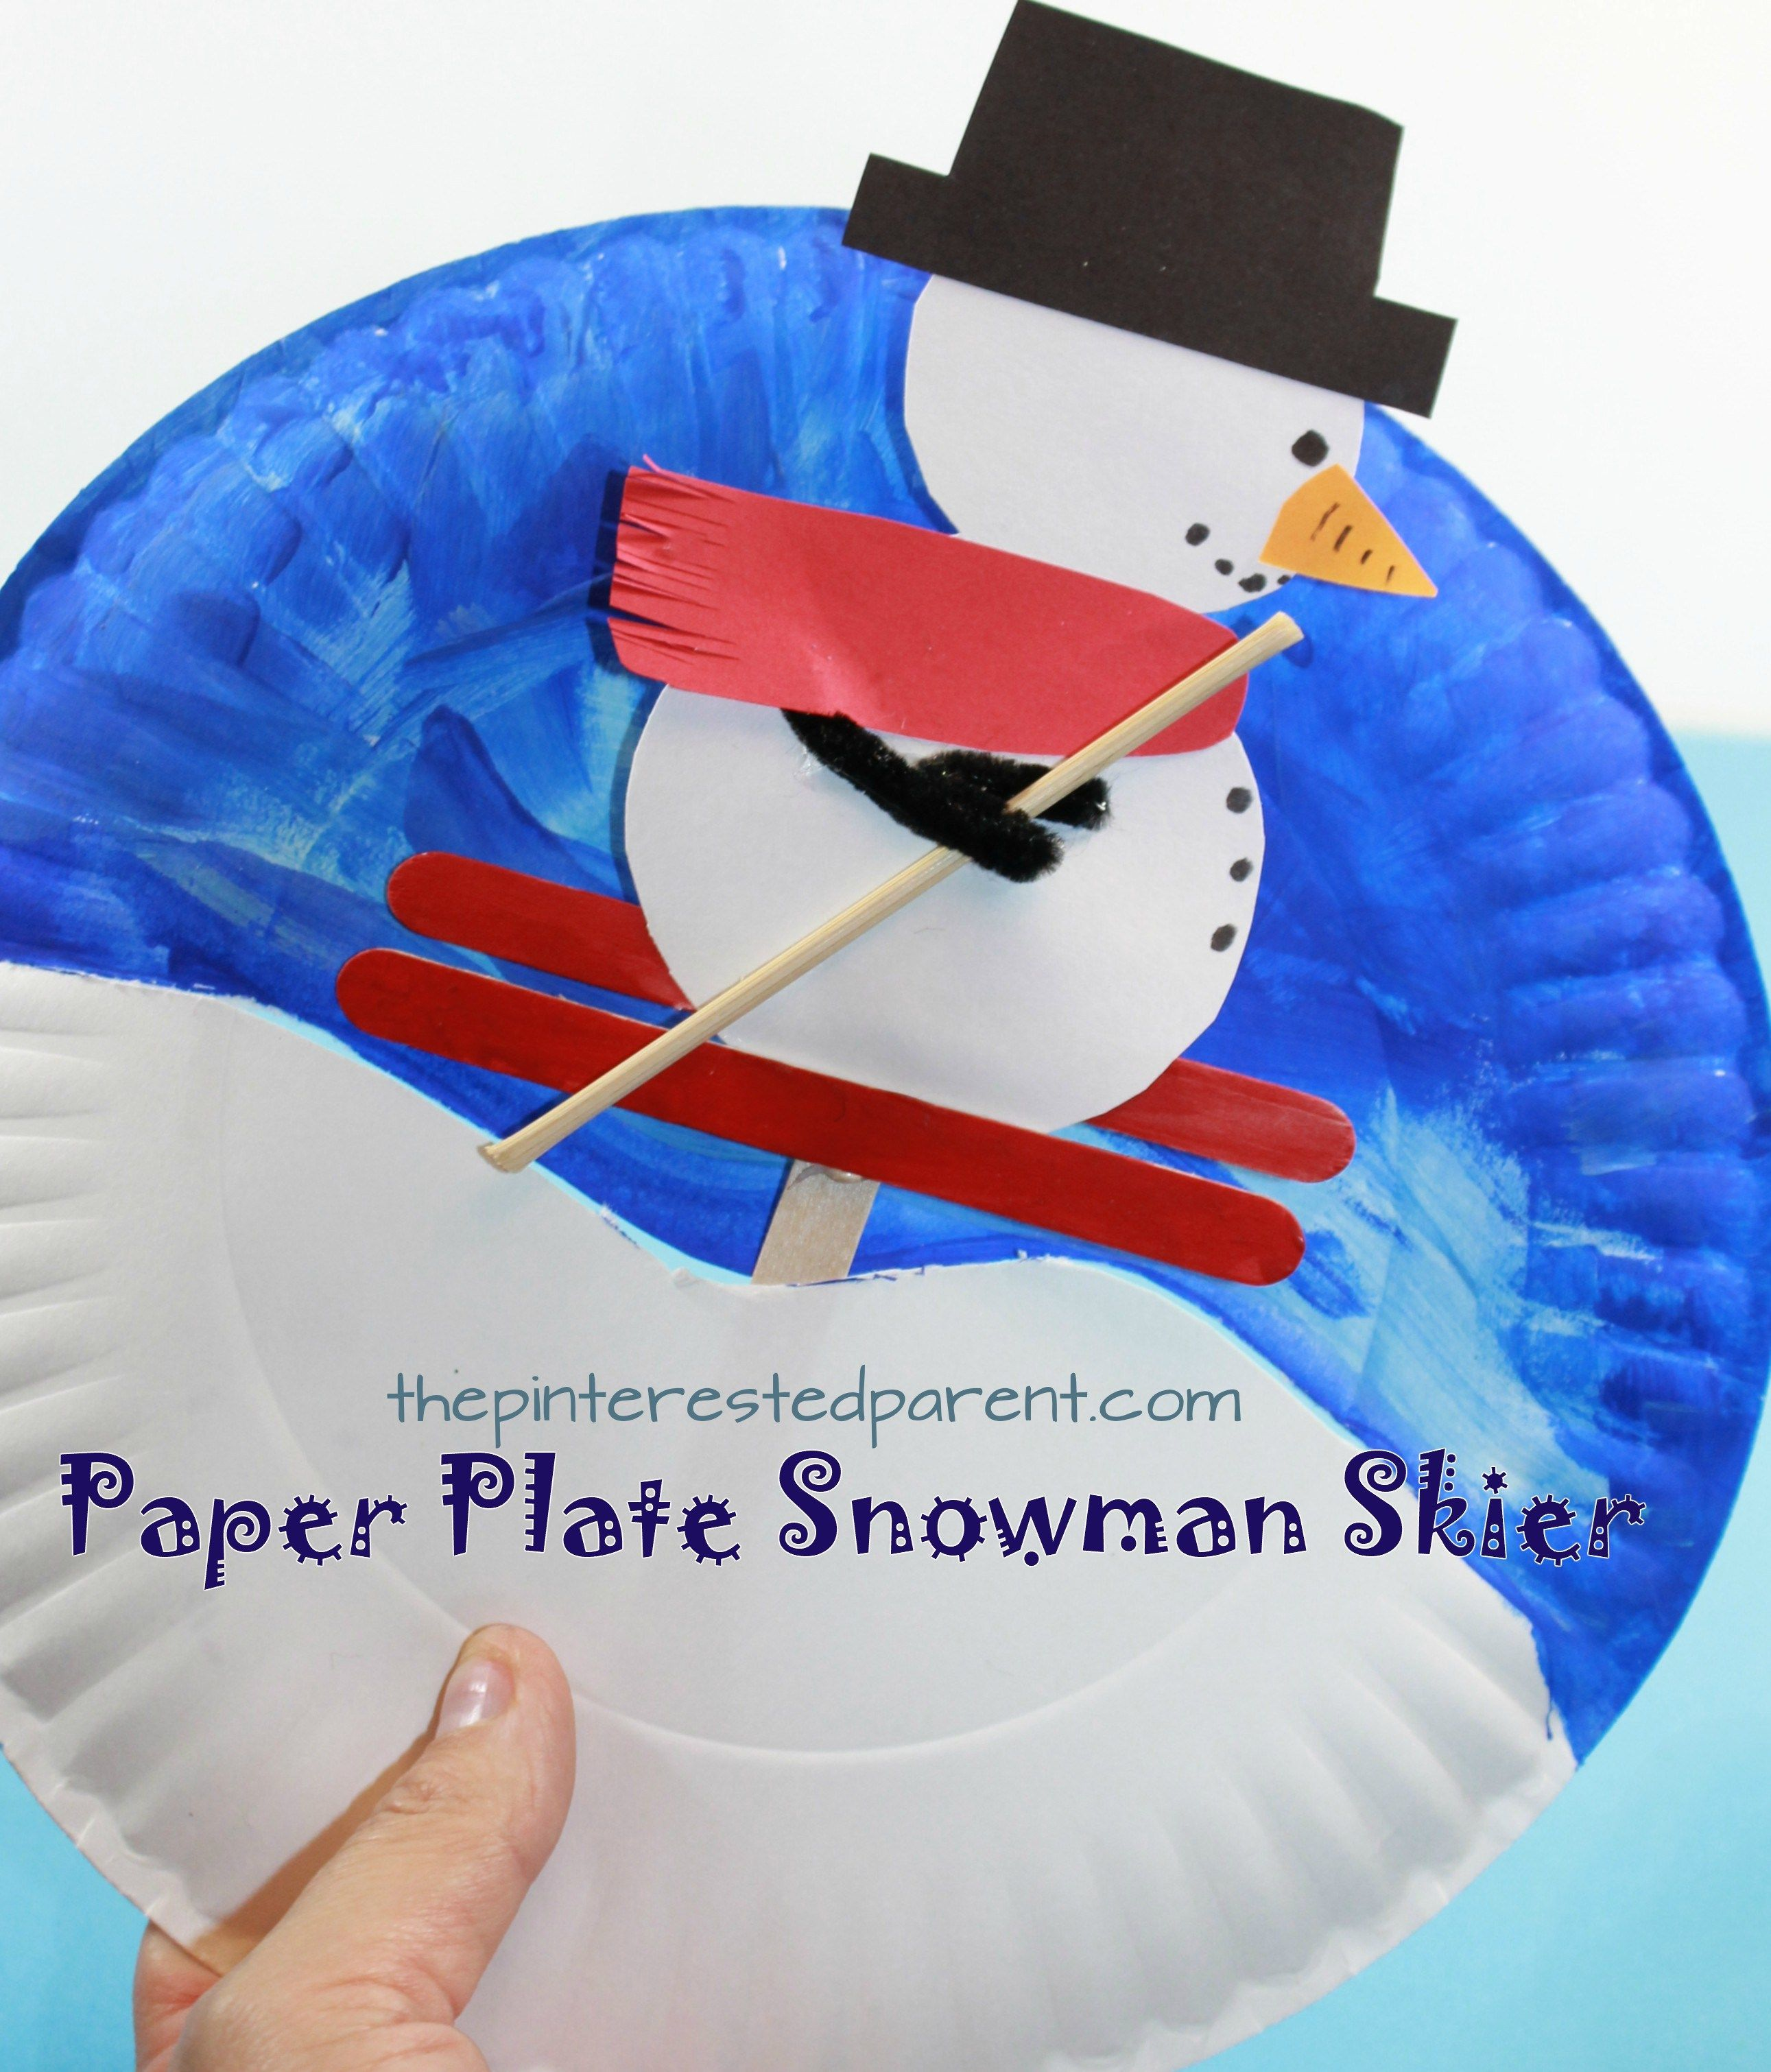 Paper Plate Snowman Skier Interactive Arts And Crafts Project For